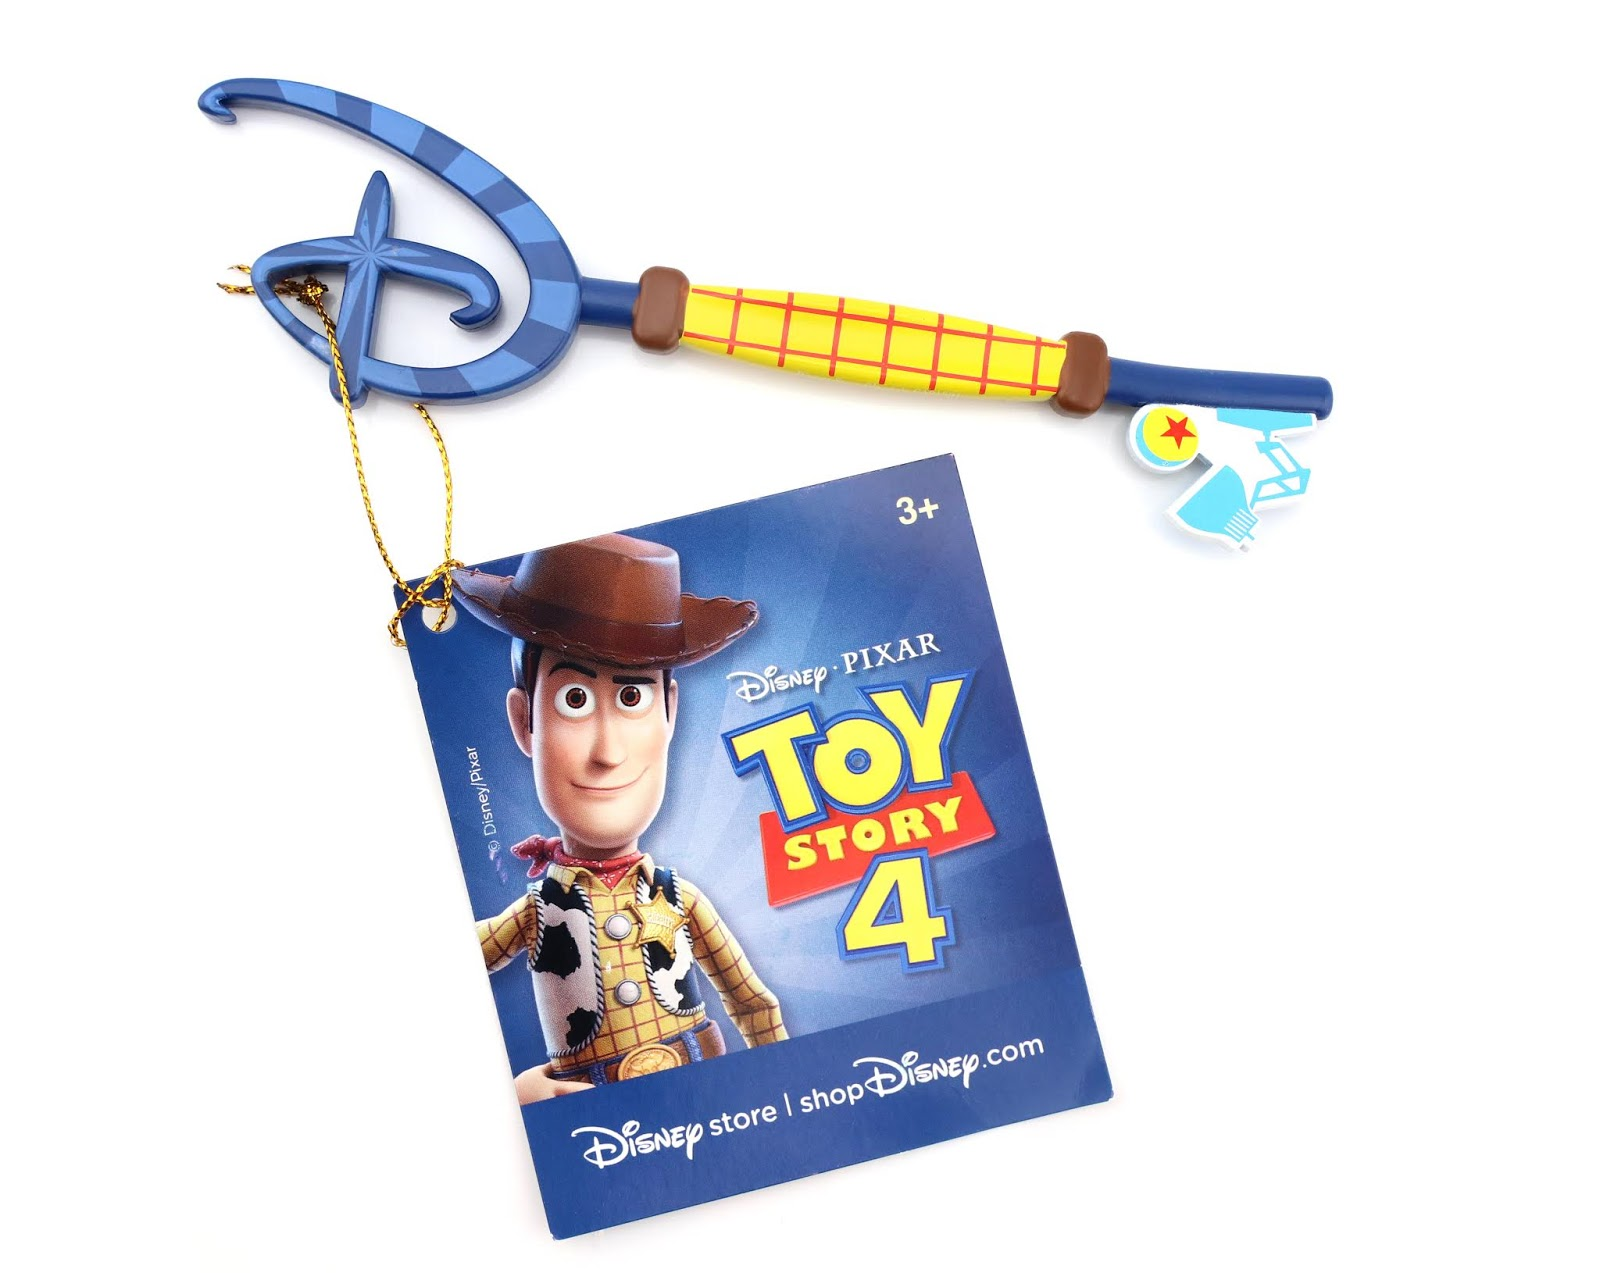 Disney Store Toy Story 4 Opening Ceremony Key